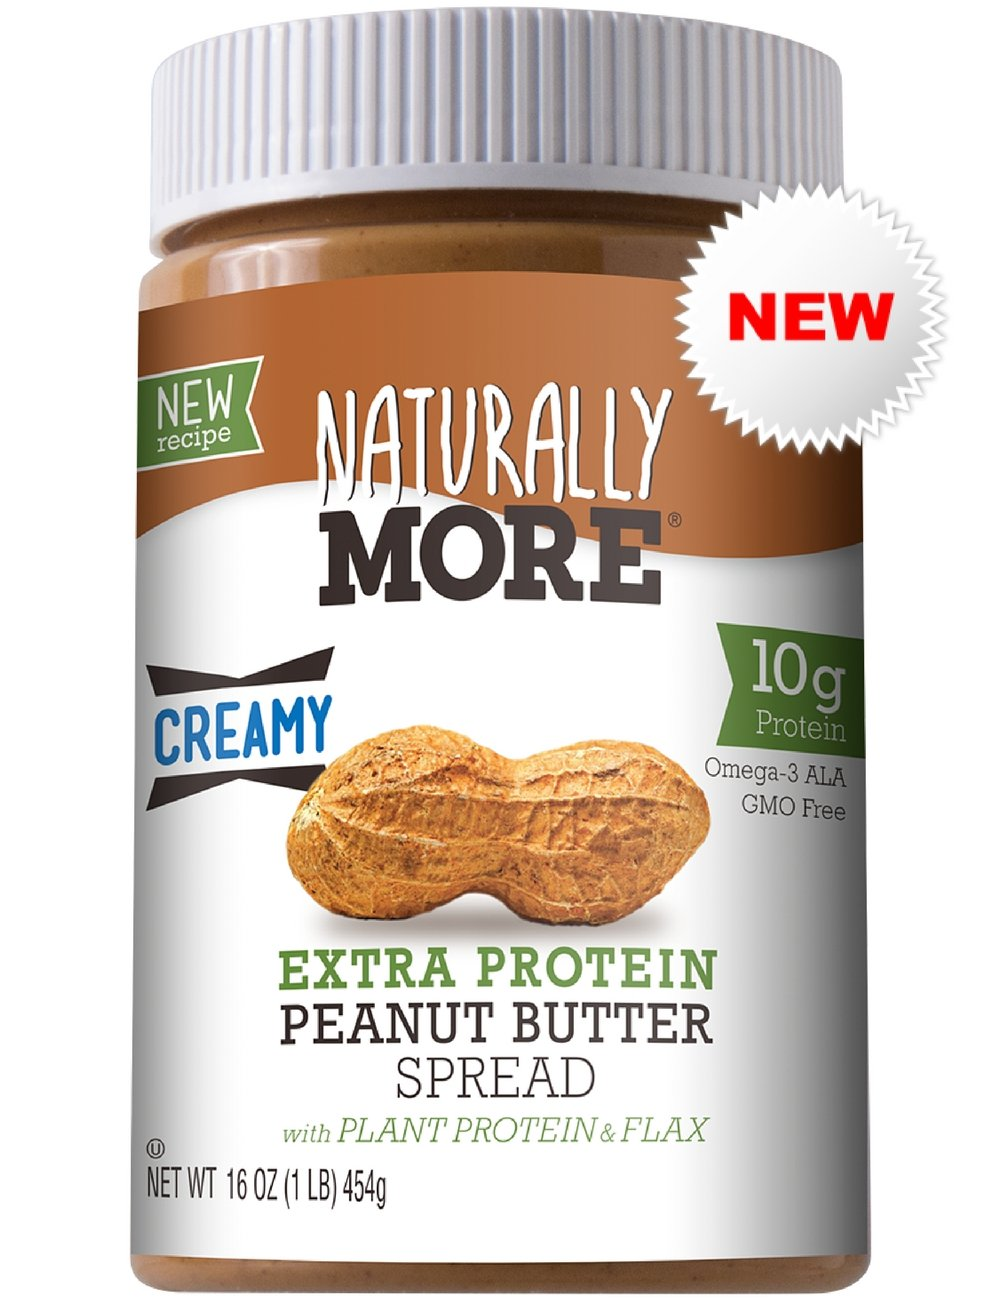 Naturally More All Natural Creamy Peanut Butter Spread Extra High Protein - 10g Flaxseed - Plant Based Nut Butter